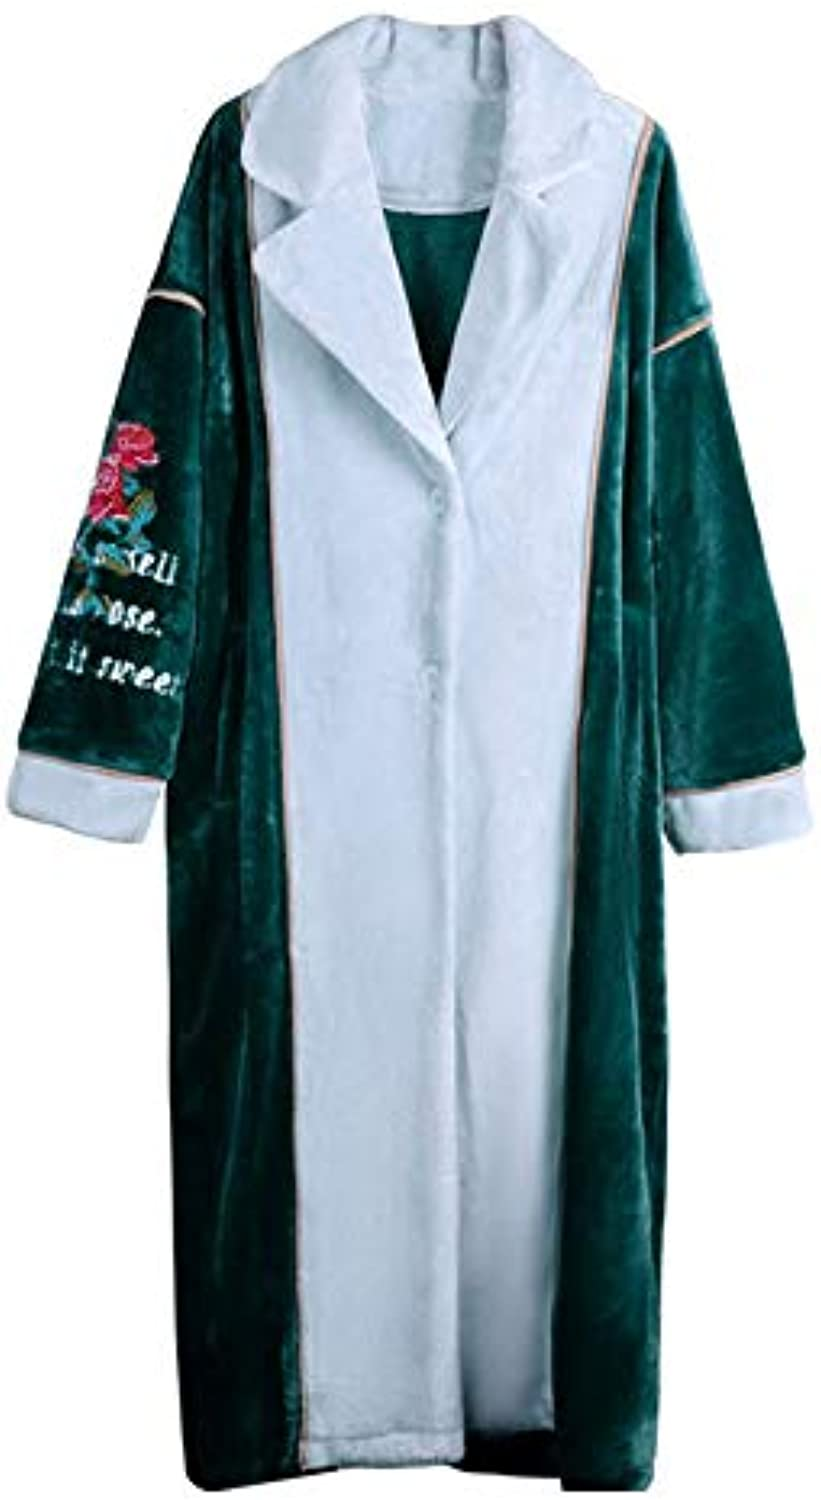 NAN Liang Women's Bathrobes 100% Cotton Dressing Gowns Thicken Warm Robes Outer Collar Luxury Winter Night Gown (L, M, XL) (Size   L)